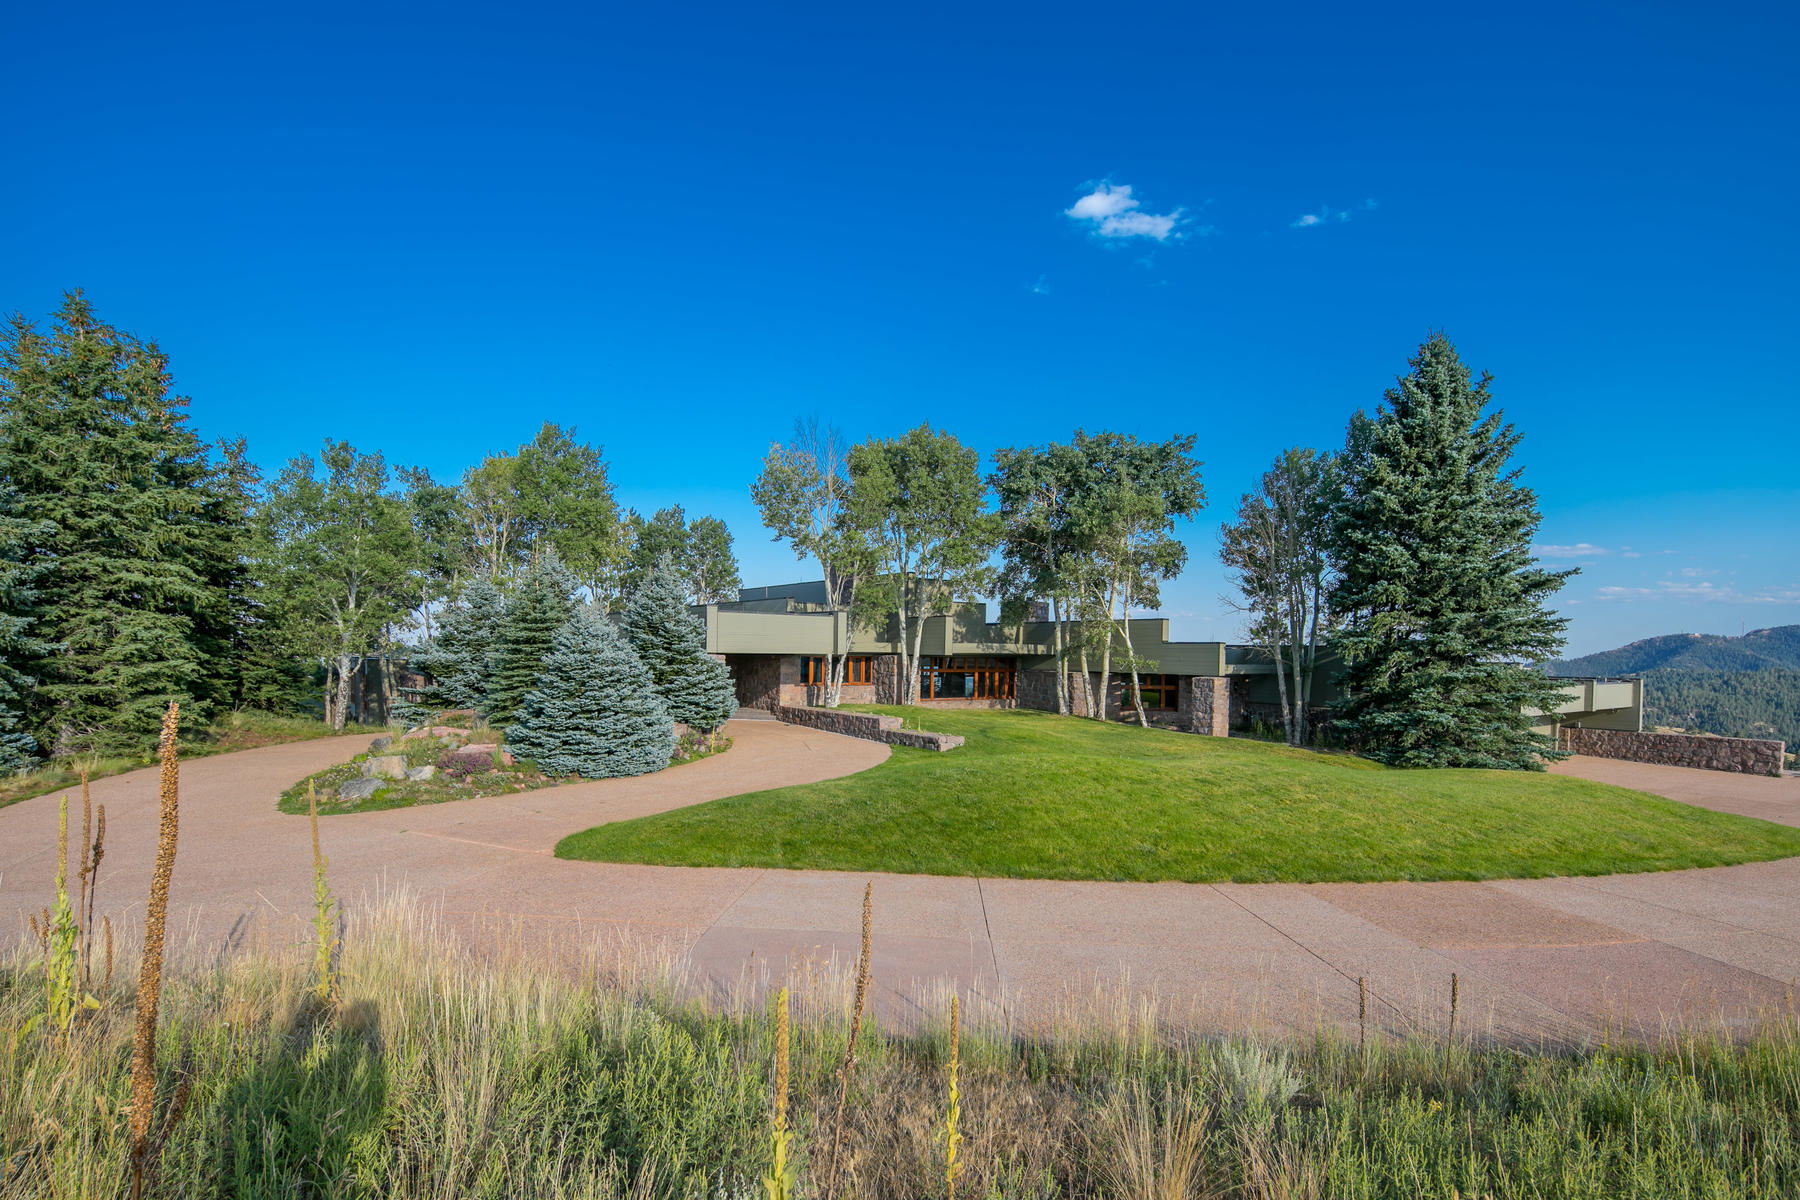 Property for Sale at Expansive Ranch Home in Genesee 21509 Cabrini Boulevard Golden, Colorado 80401 United States